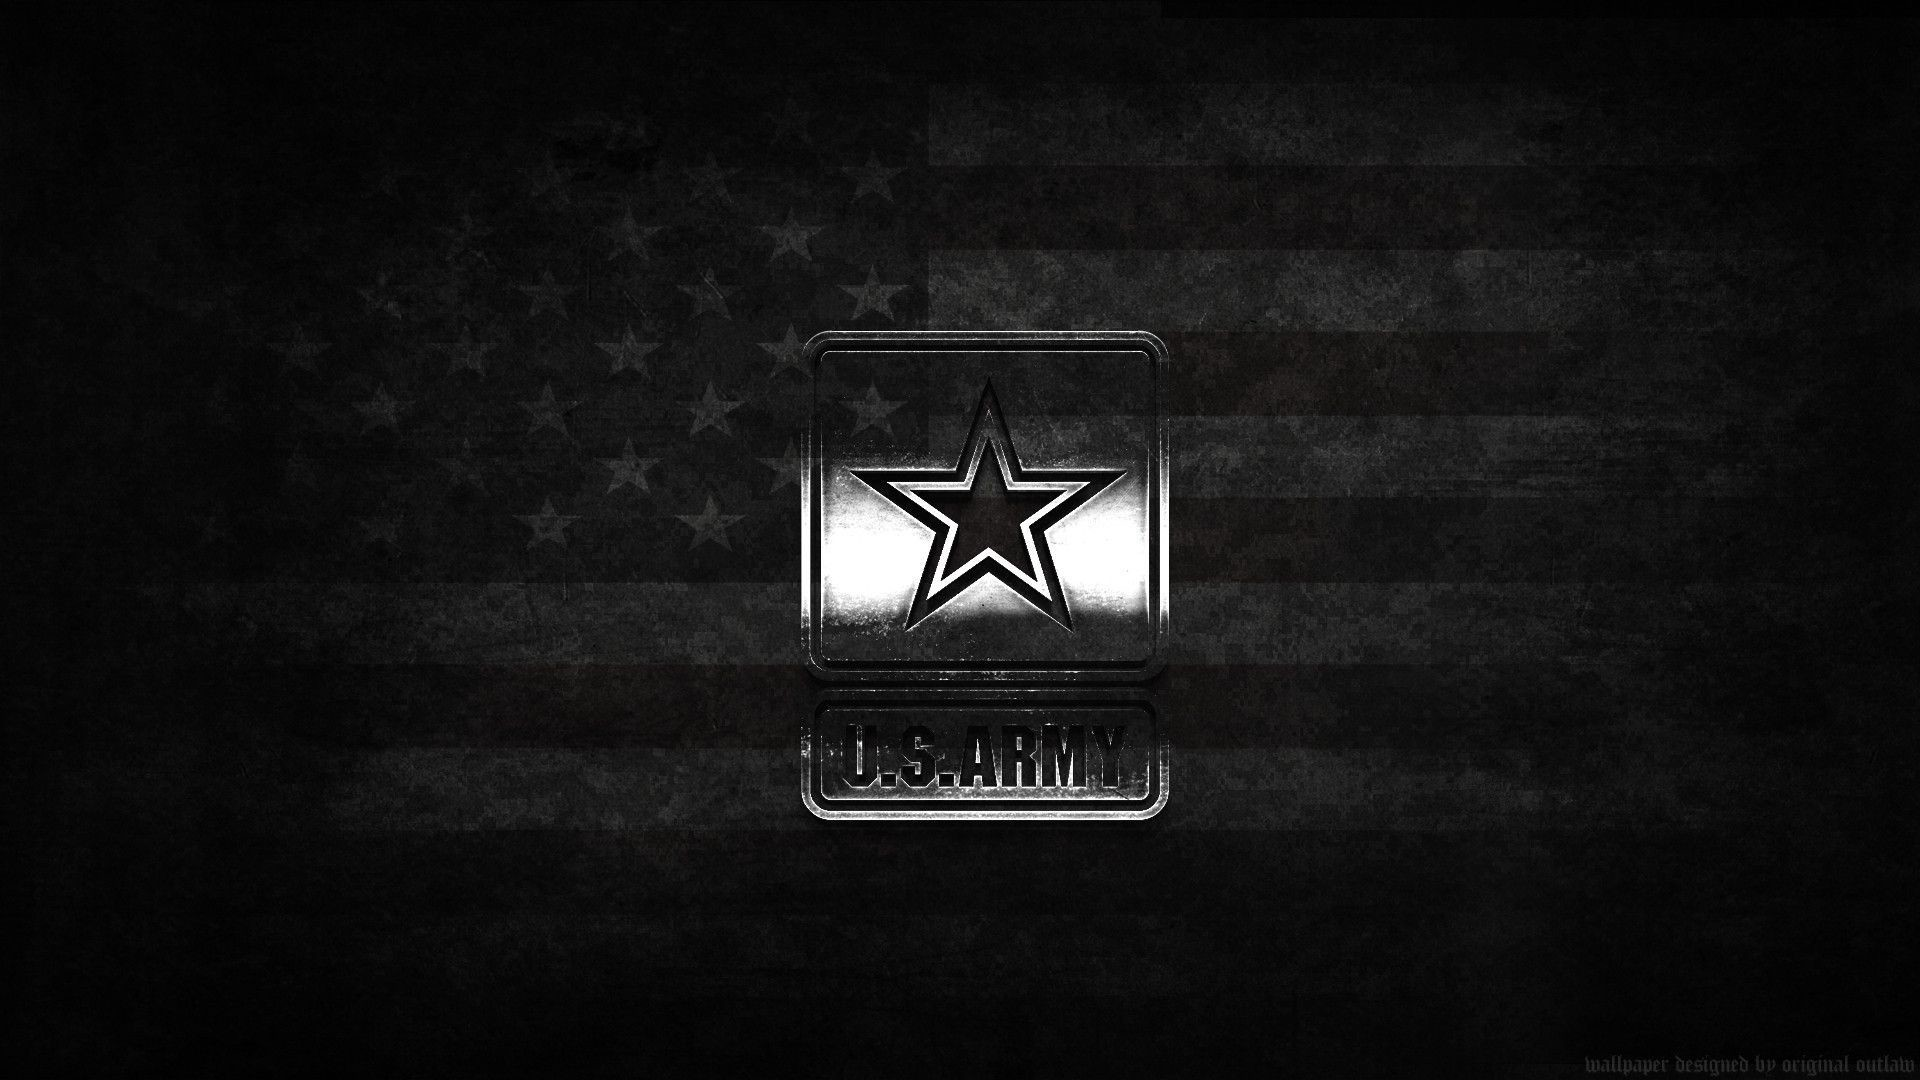 Army strong wallpaper 57 images - Military wallpaper army ...